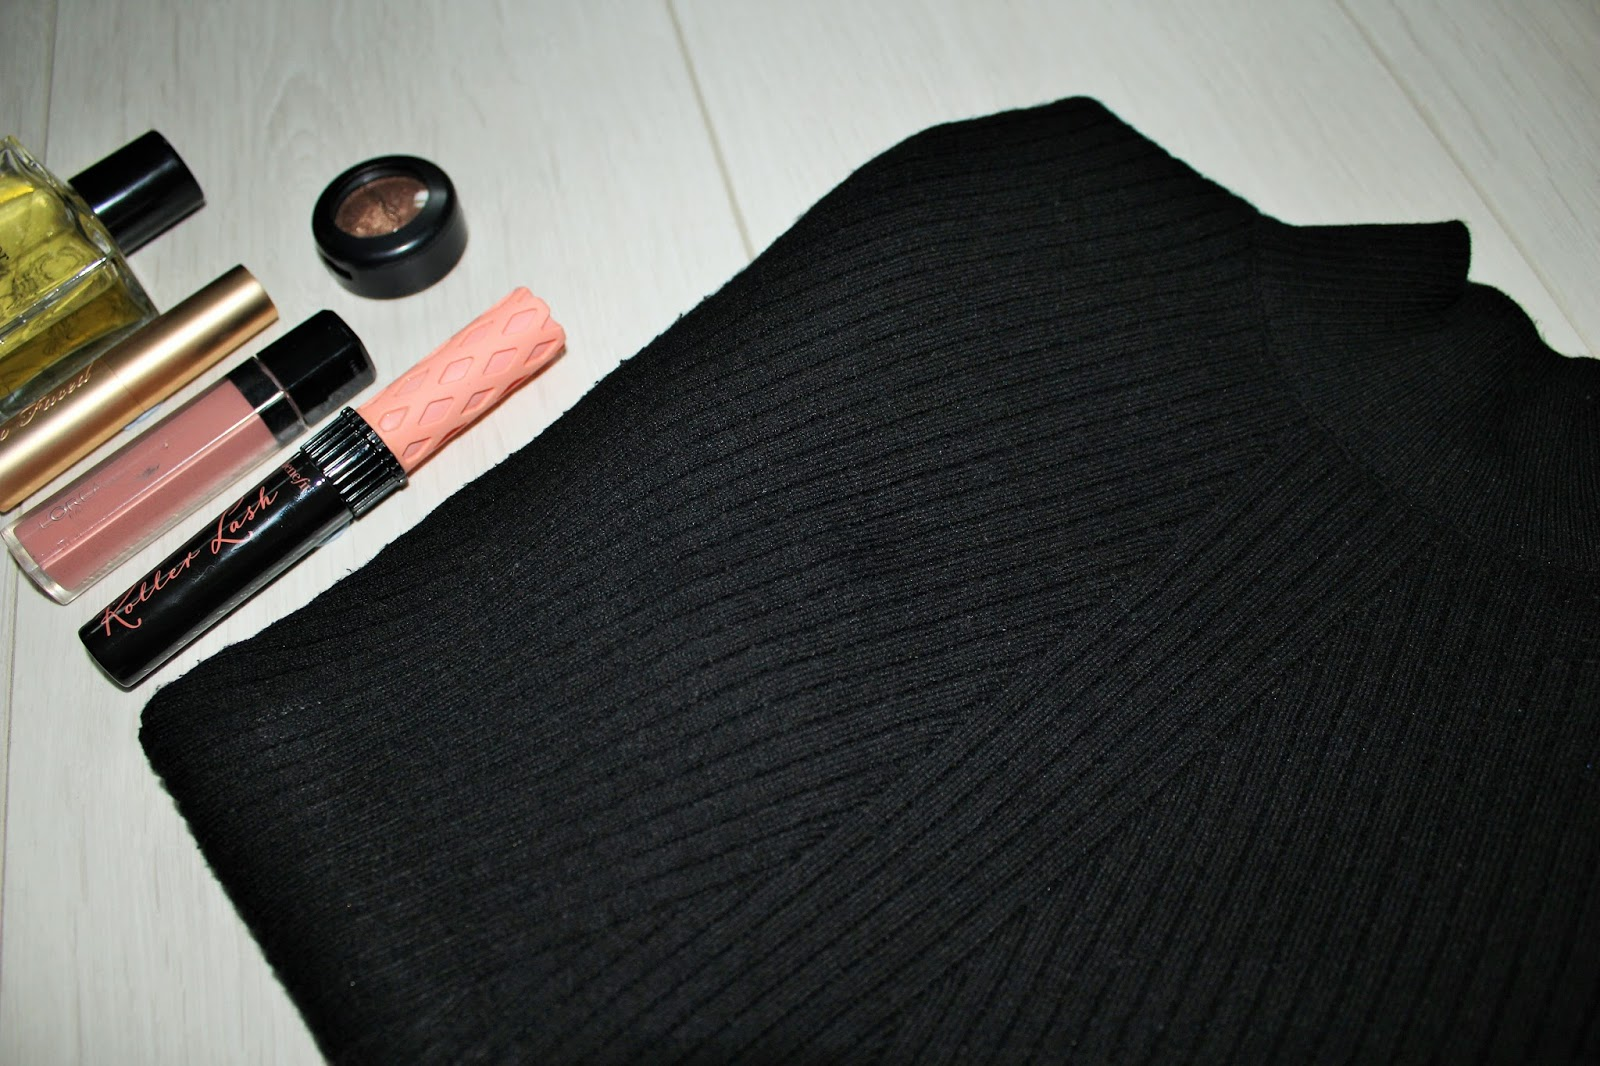 January Favourites featuring Benefit, Miller Harris, Mac, Too Faced, L'Oreal and H&M - 6